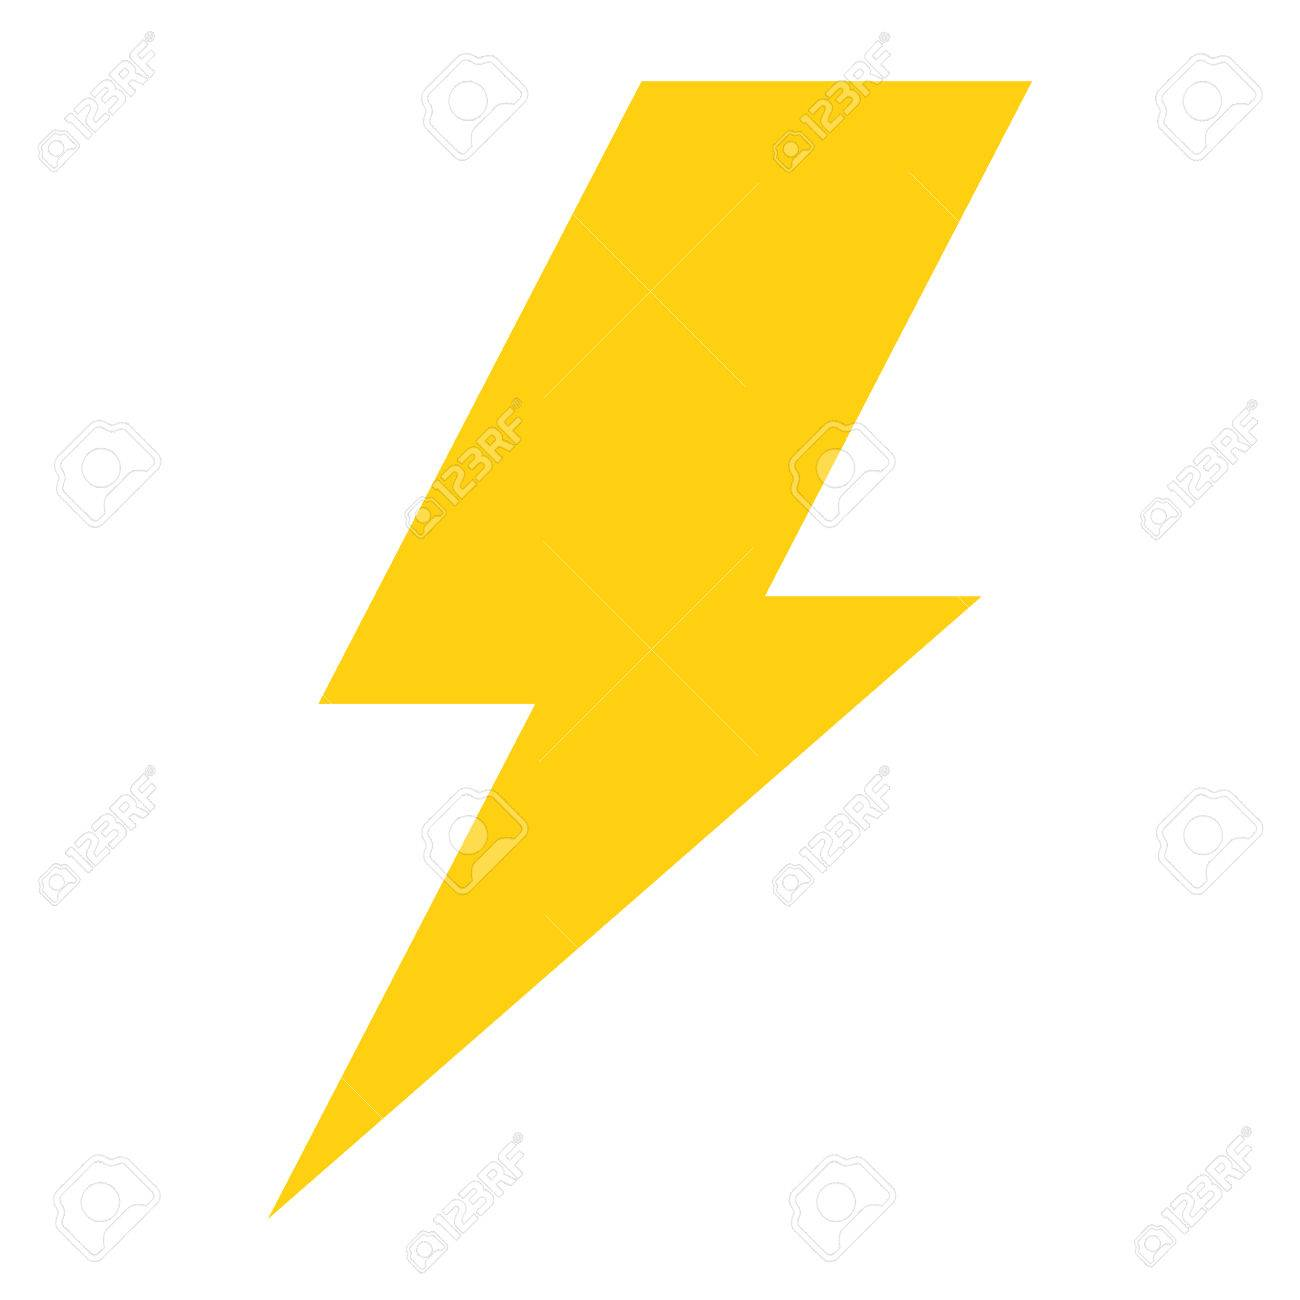 lightning bolt vector icon royalty free cliparts vectors and stock rh 123rf com lightning bolt clipart vector vector lightning bolt png